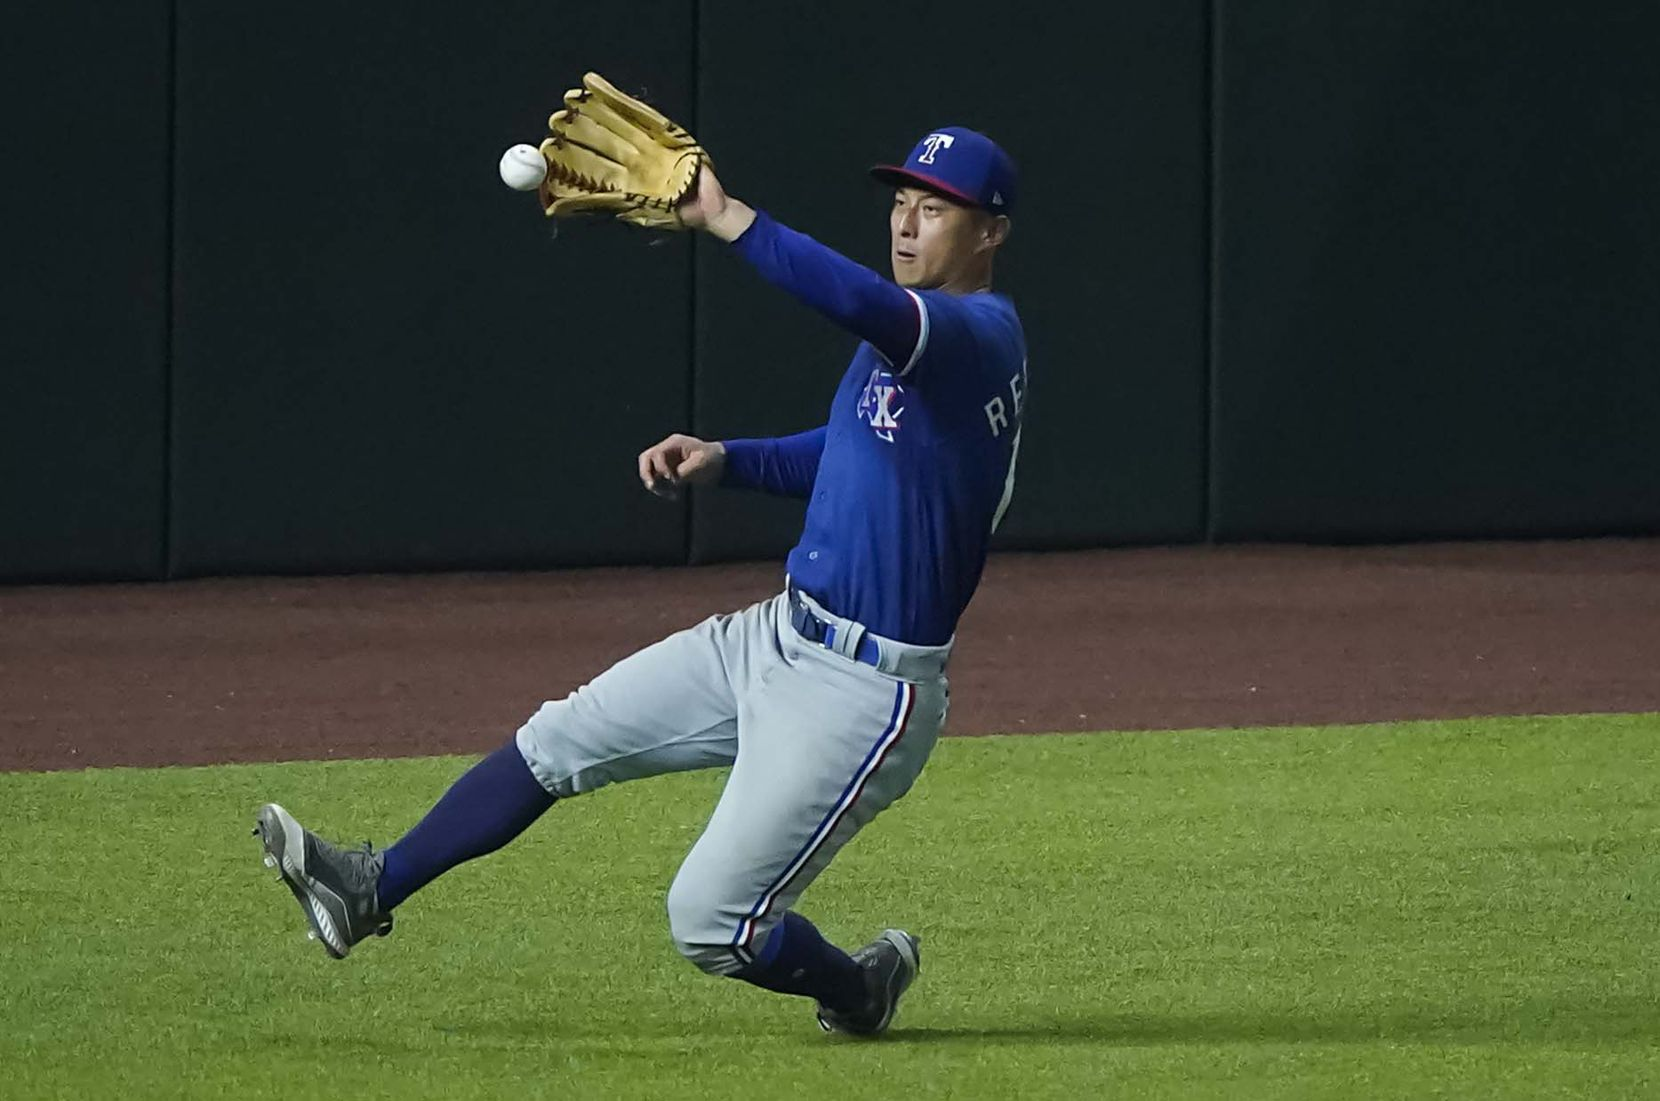 Outfielder Rob Refsnyder chases down a double off the bat of Scott Heineman in an intrasquad game during Texas Rangers Summer Camp at Globe Life Field on Thursday, July 16, 2020.